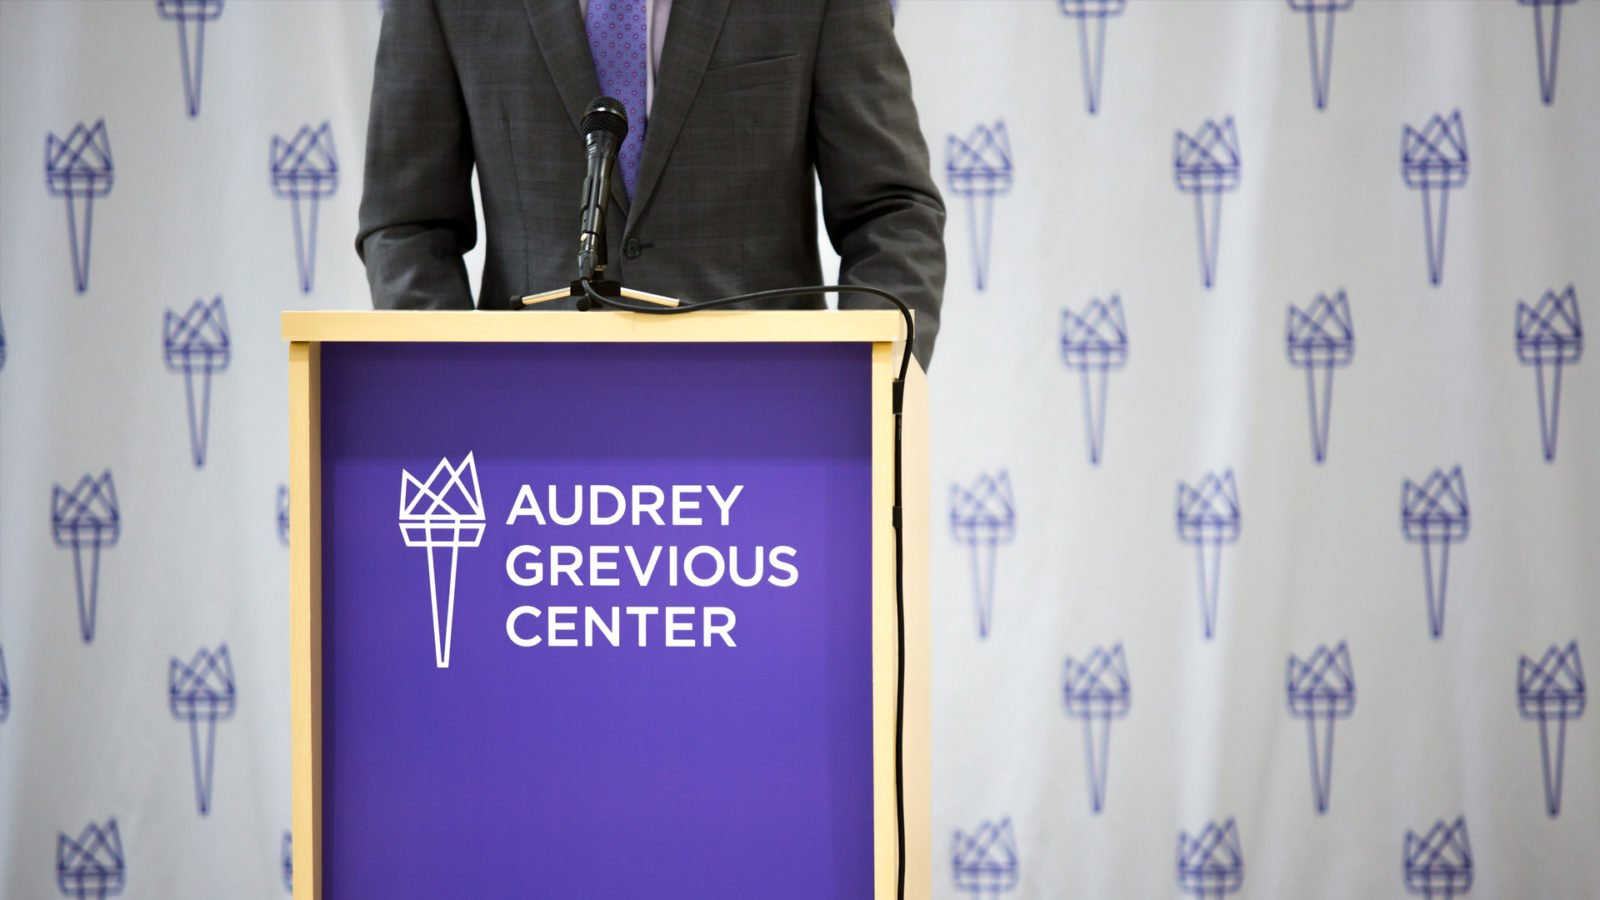 Brand Identity and podium for the Audrey Grevious Center School